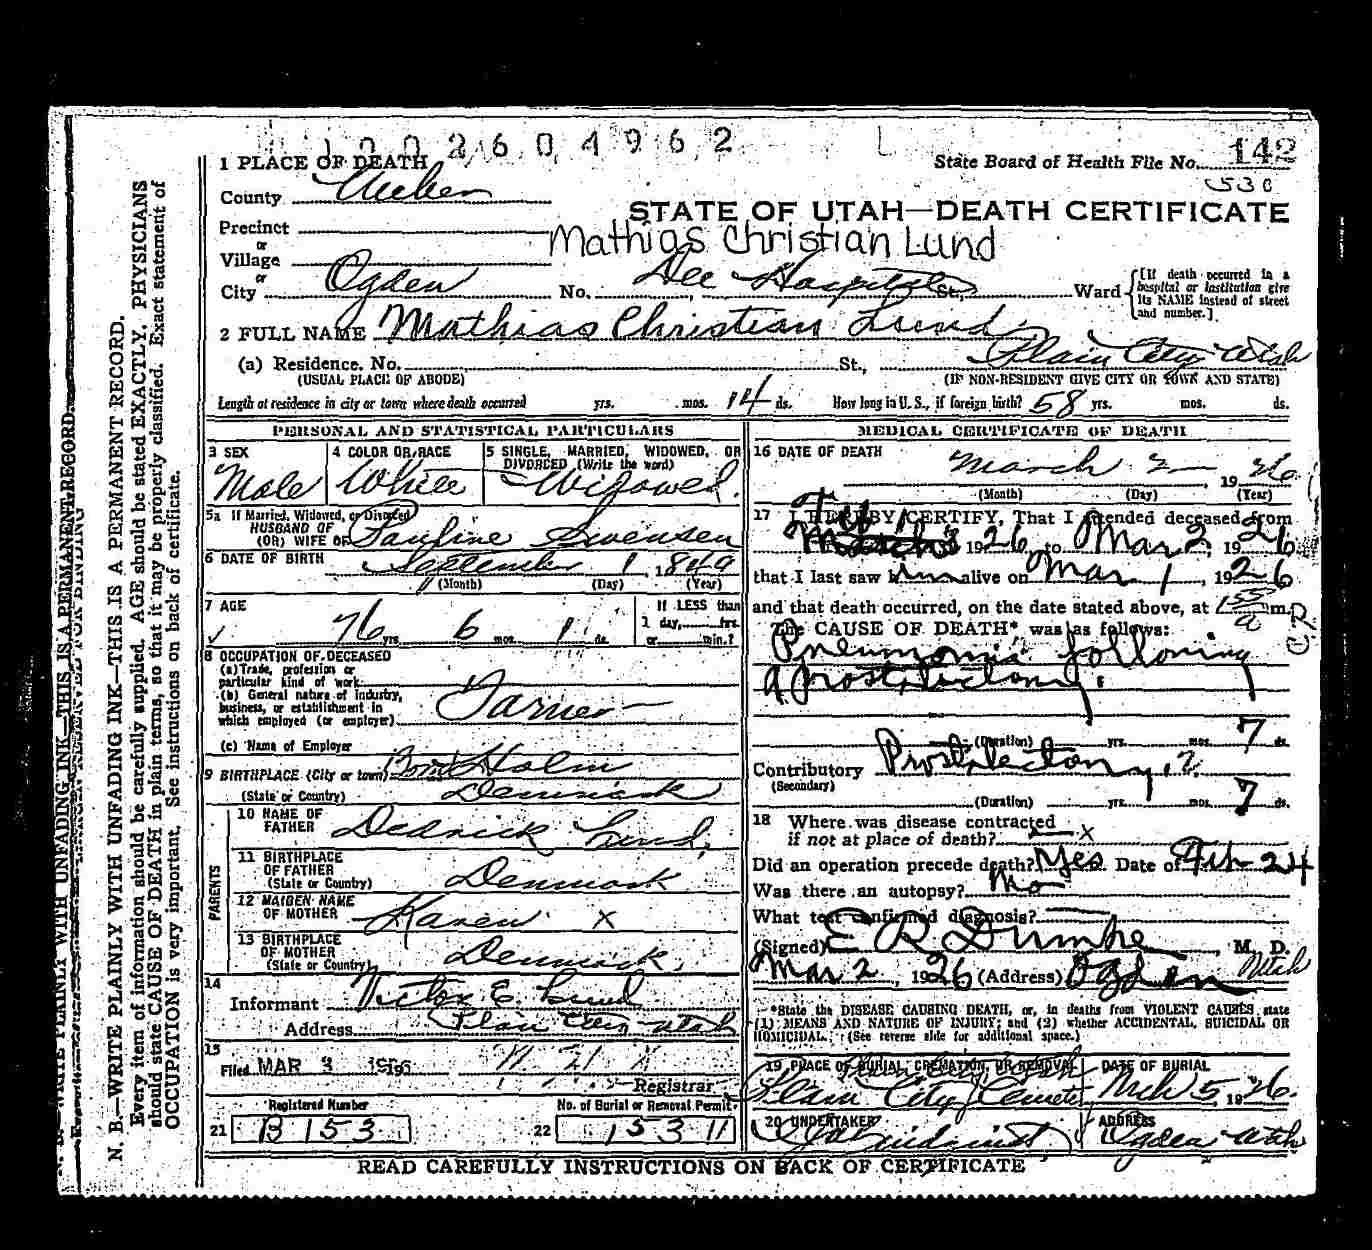 Lundology mathias christian lund death certificate source weber utah utah death certificates 1904 1956 film no 2259754 digital gs no 4121334 image no 1516 certificate no 1betcityfo Choice Image